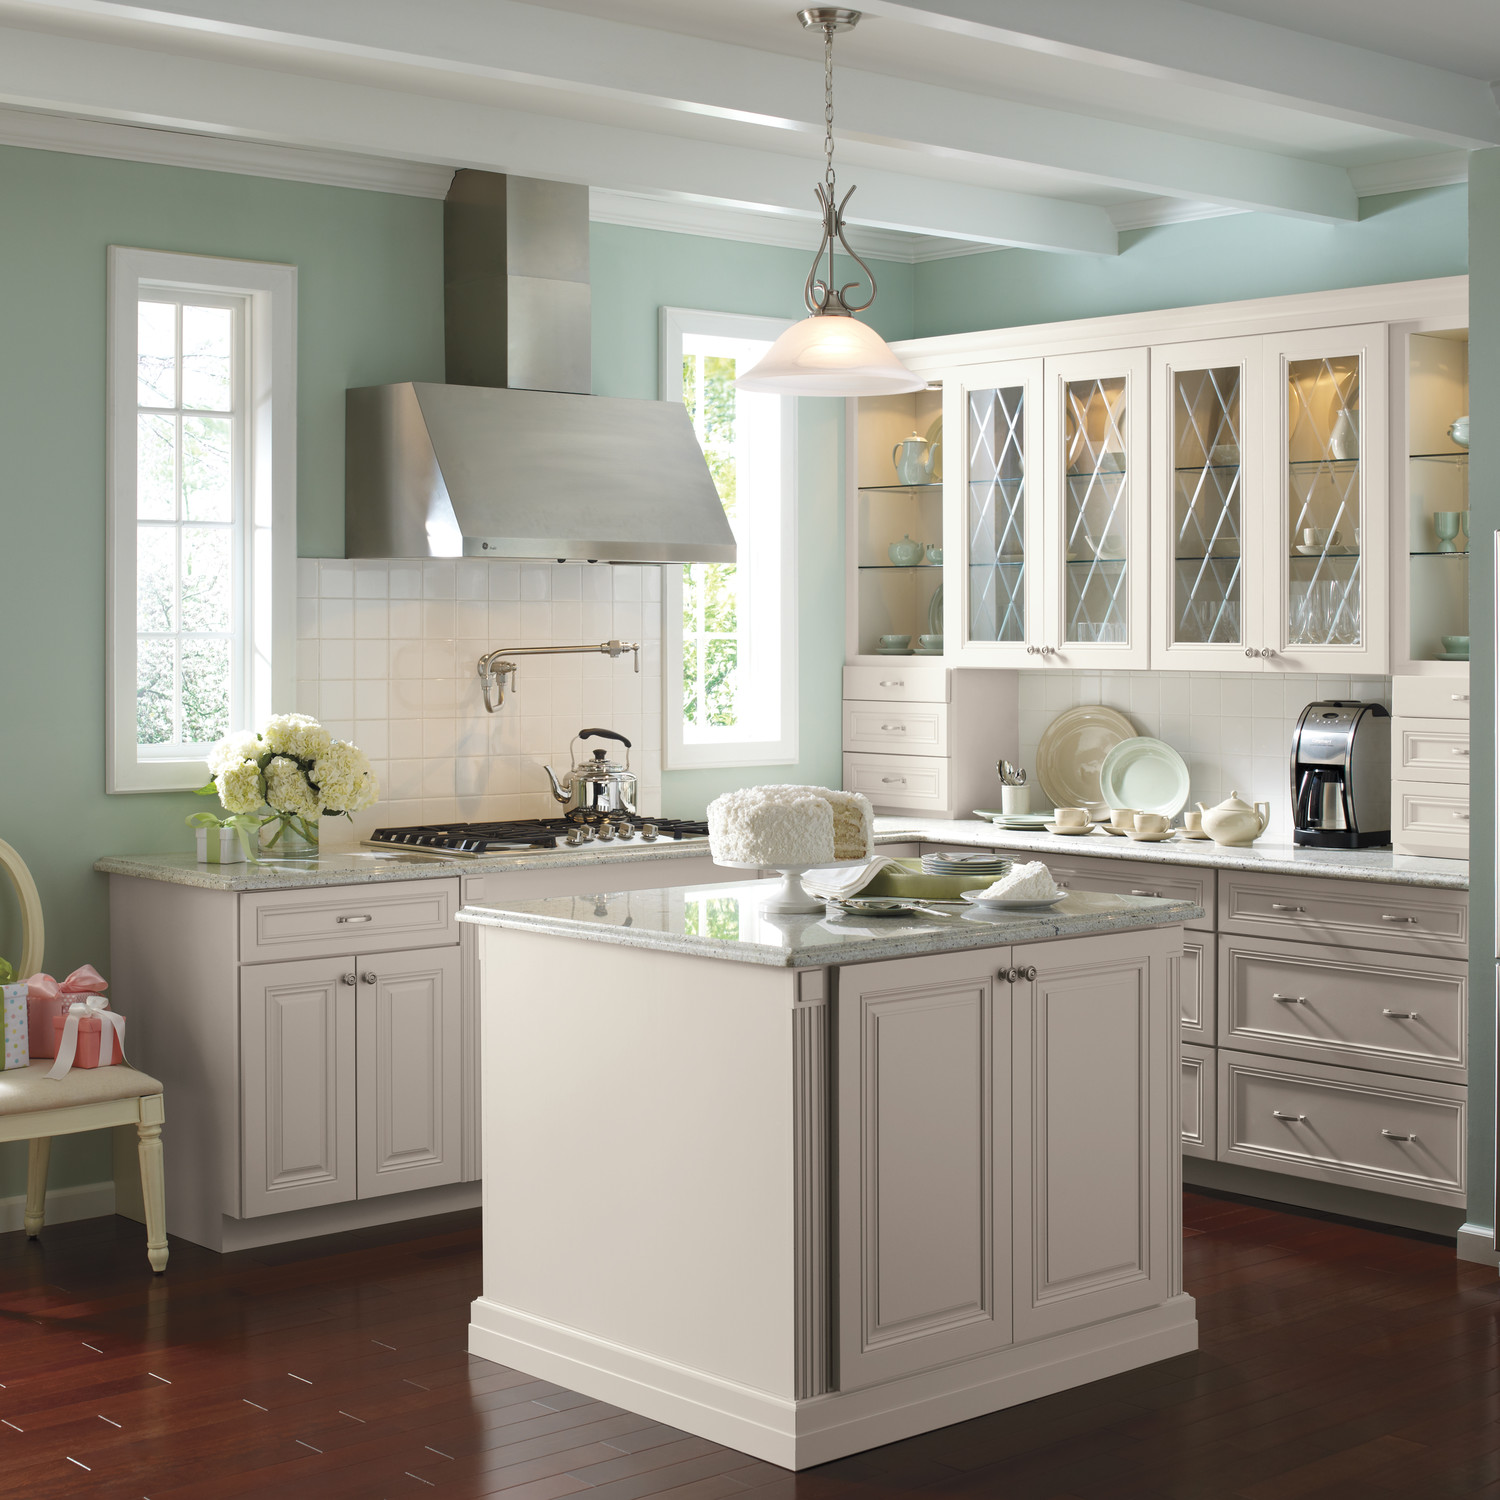 Great Why Marthau0027s Kitchens